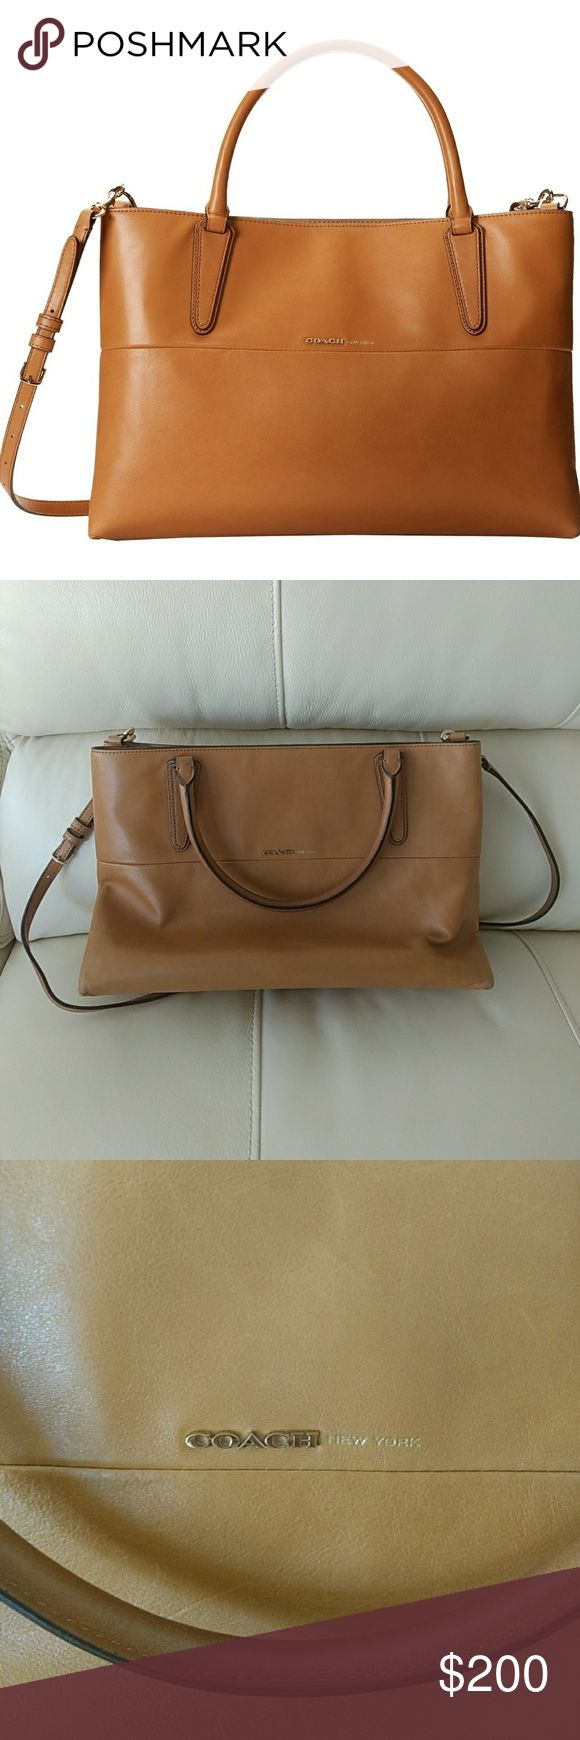 """Coach Borough Napa Purse Lightly used, bottom and corners in great condition. Small pen mark on back. 13.95""""x9""""x5.5"""". Includes original dust bag Coach Bags"""